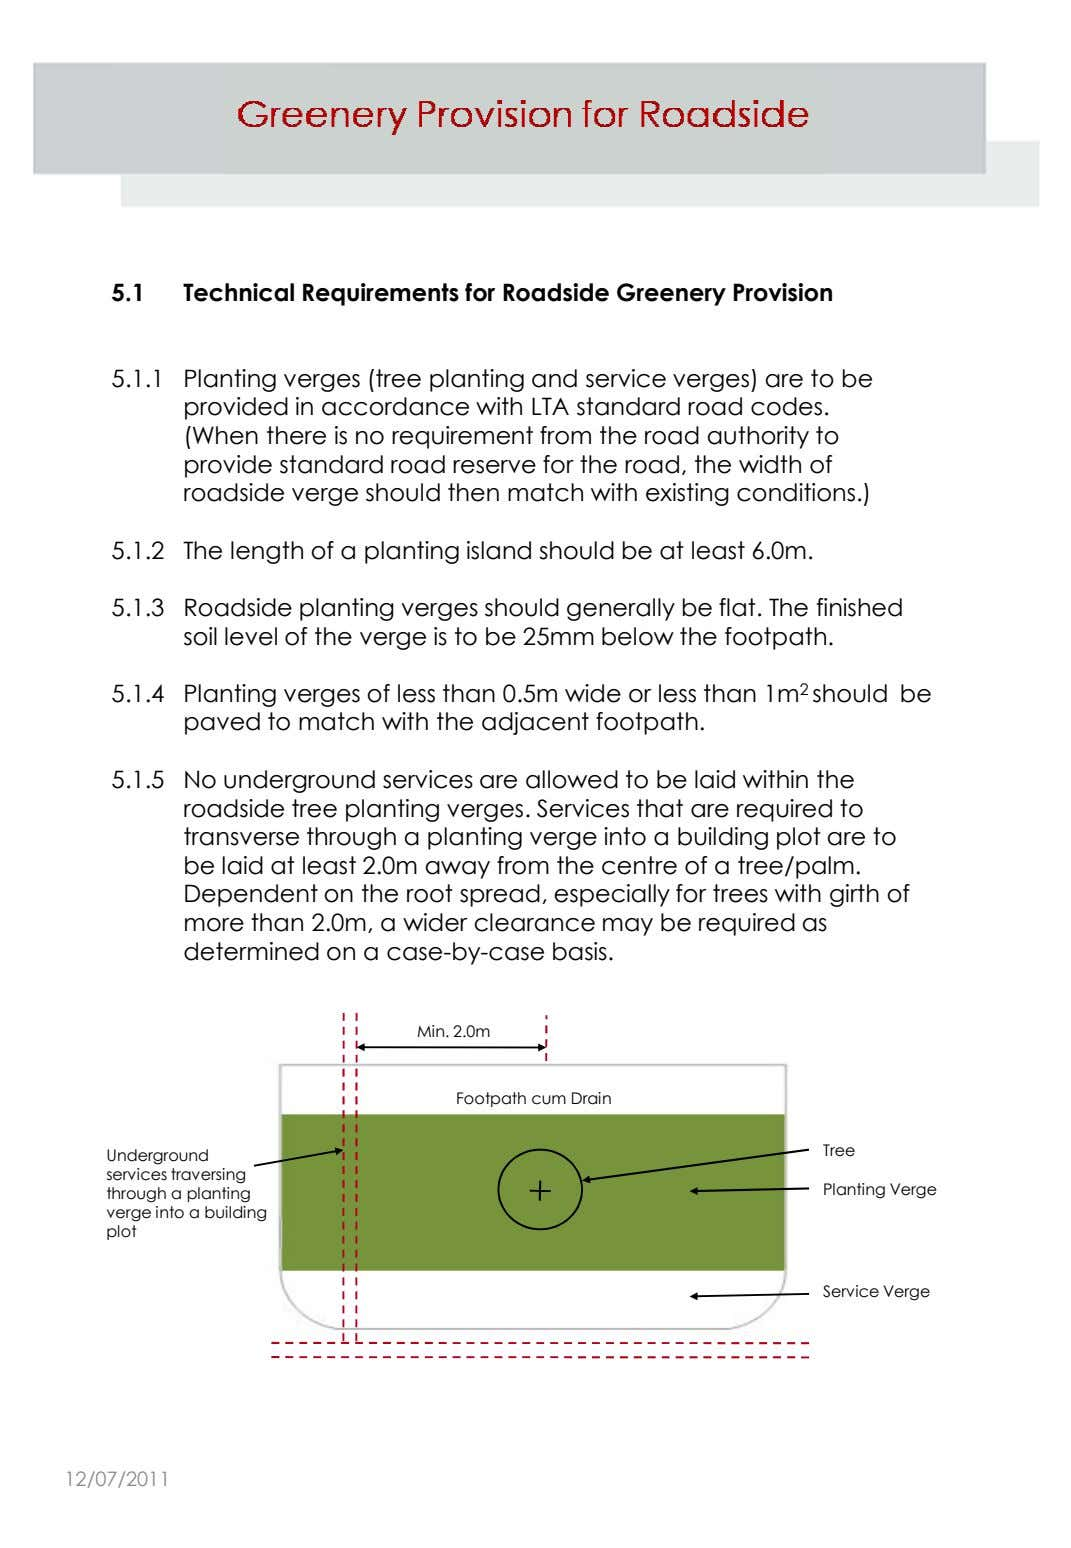 5.1 Technical Requirements for Roadside Greenery Provision 5.1.1 Planting verges (tree planting and service verges)